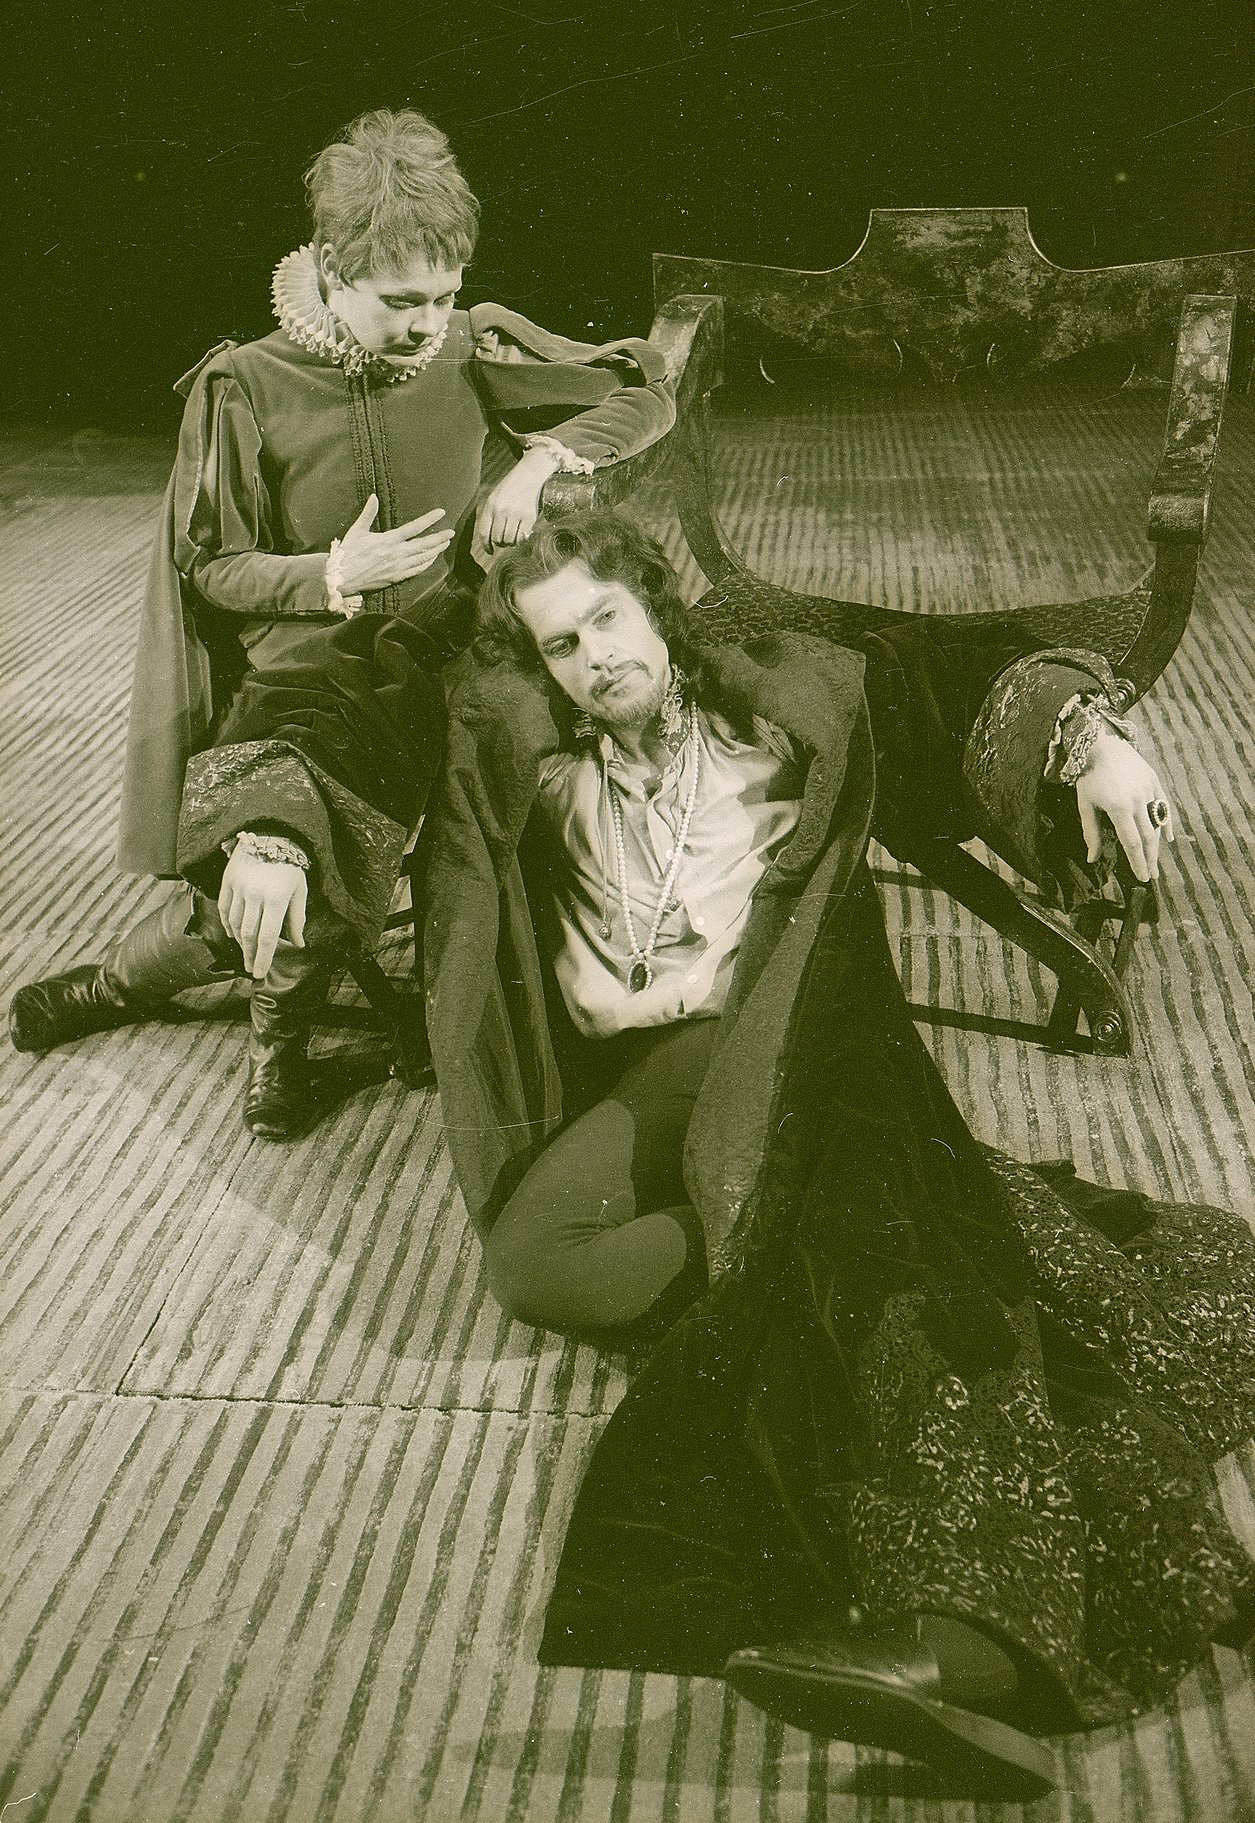 Viola sits behind Orsino, looking down at him while he stares into the distance in the 1969 production of Twelfth Night.